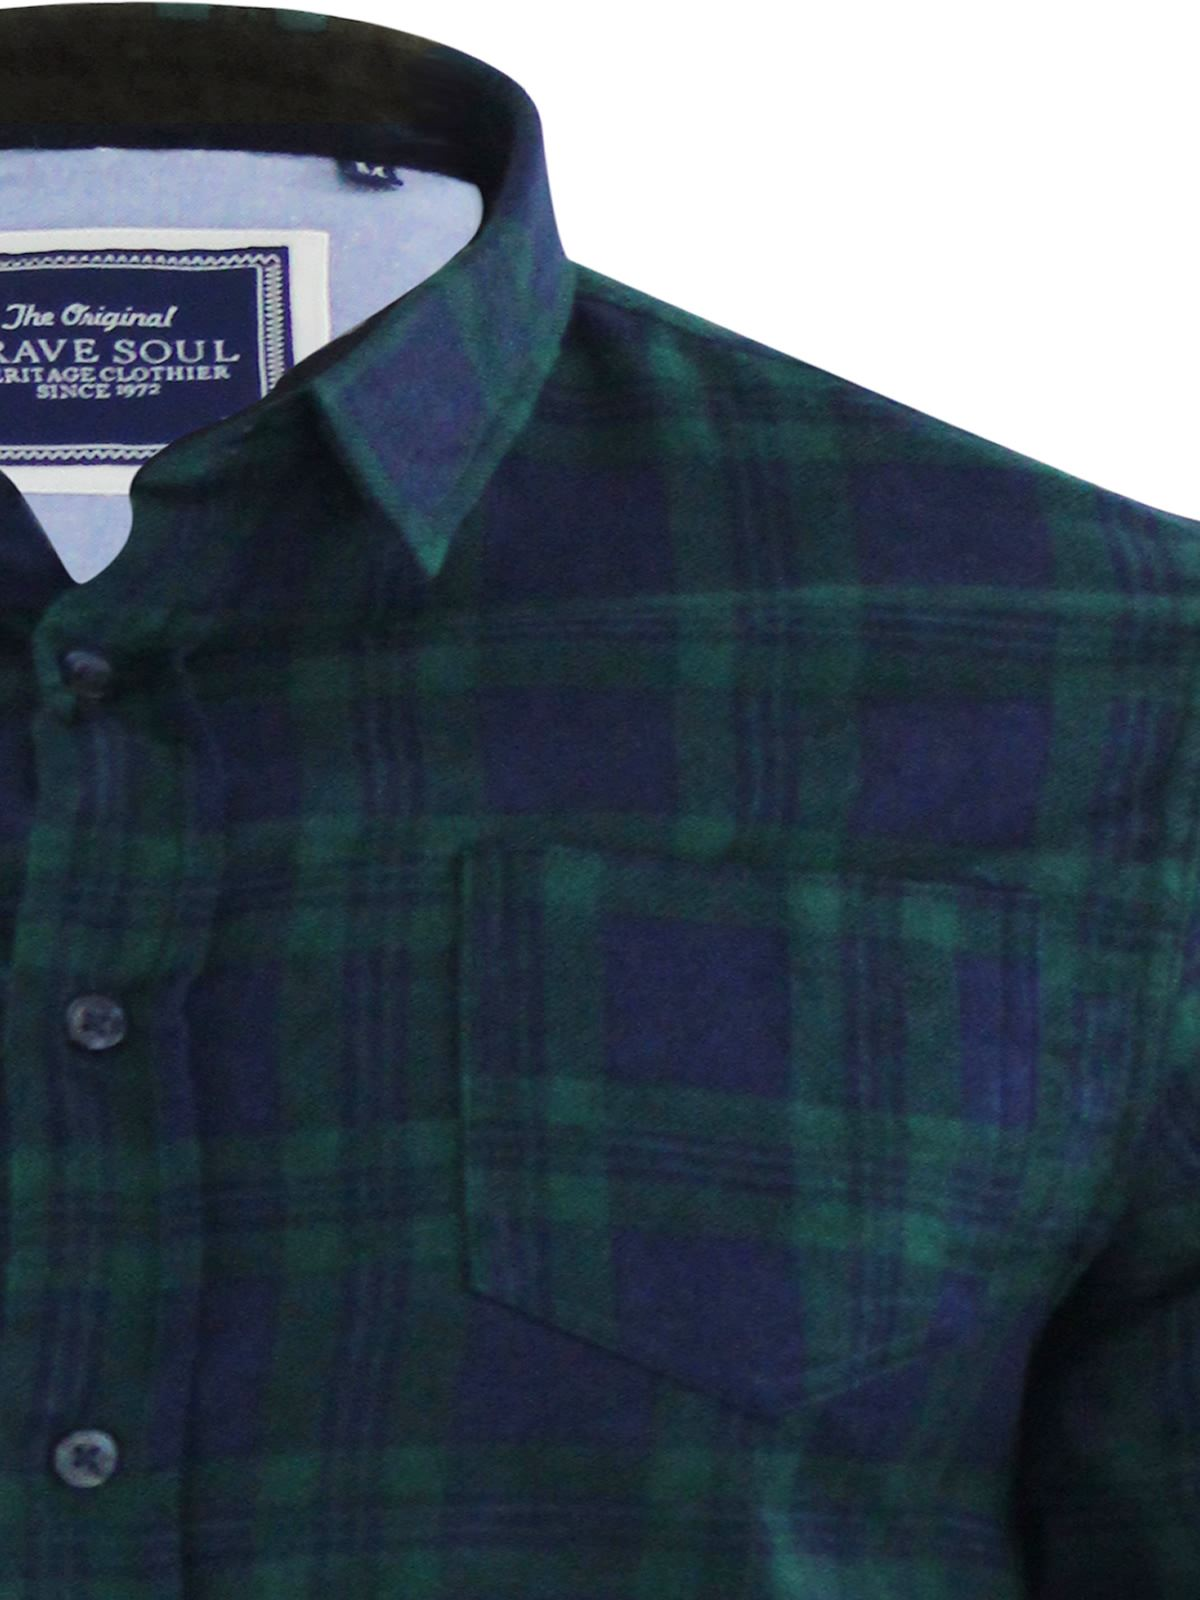 Mens-Check-Shirt-Brave-Soul-Flannel-Brushed-Cotton-Long-Sleeve-Casual-Top thumbnail 76